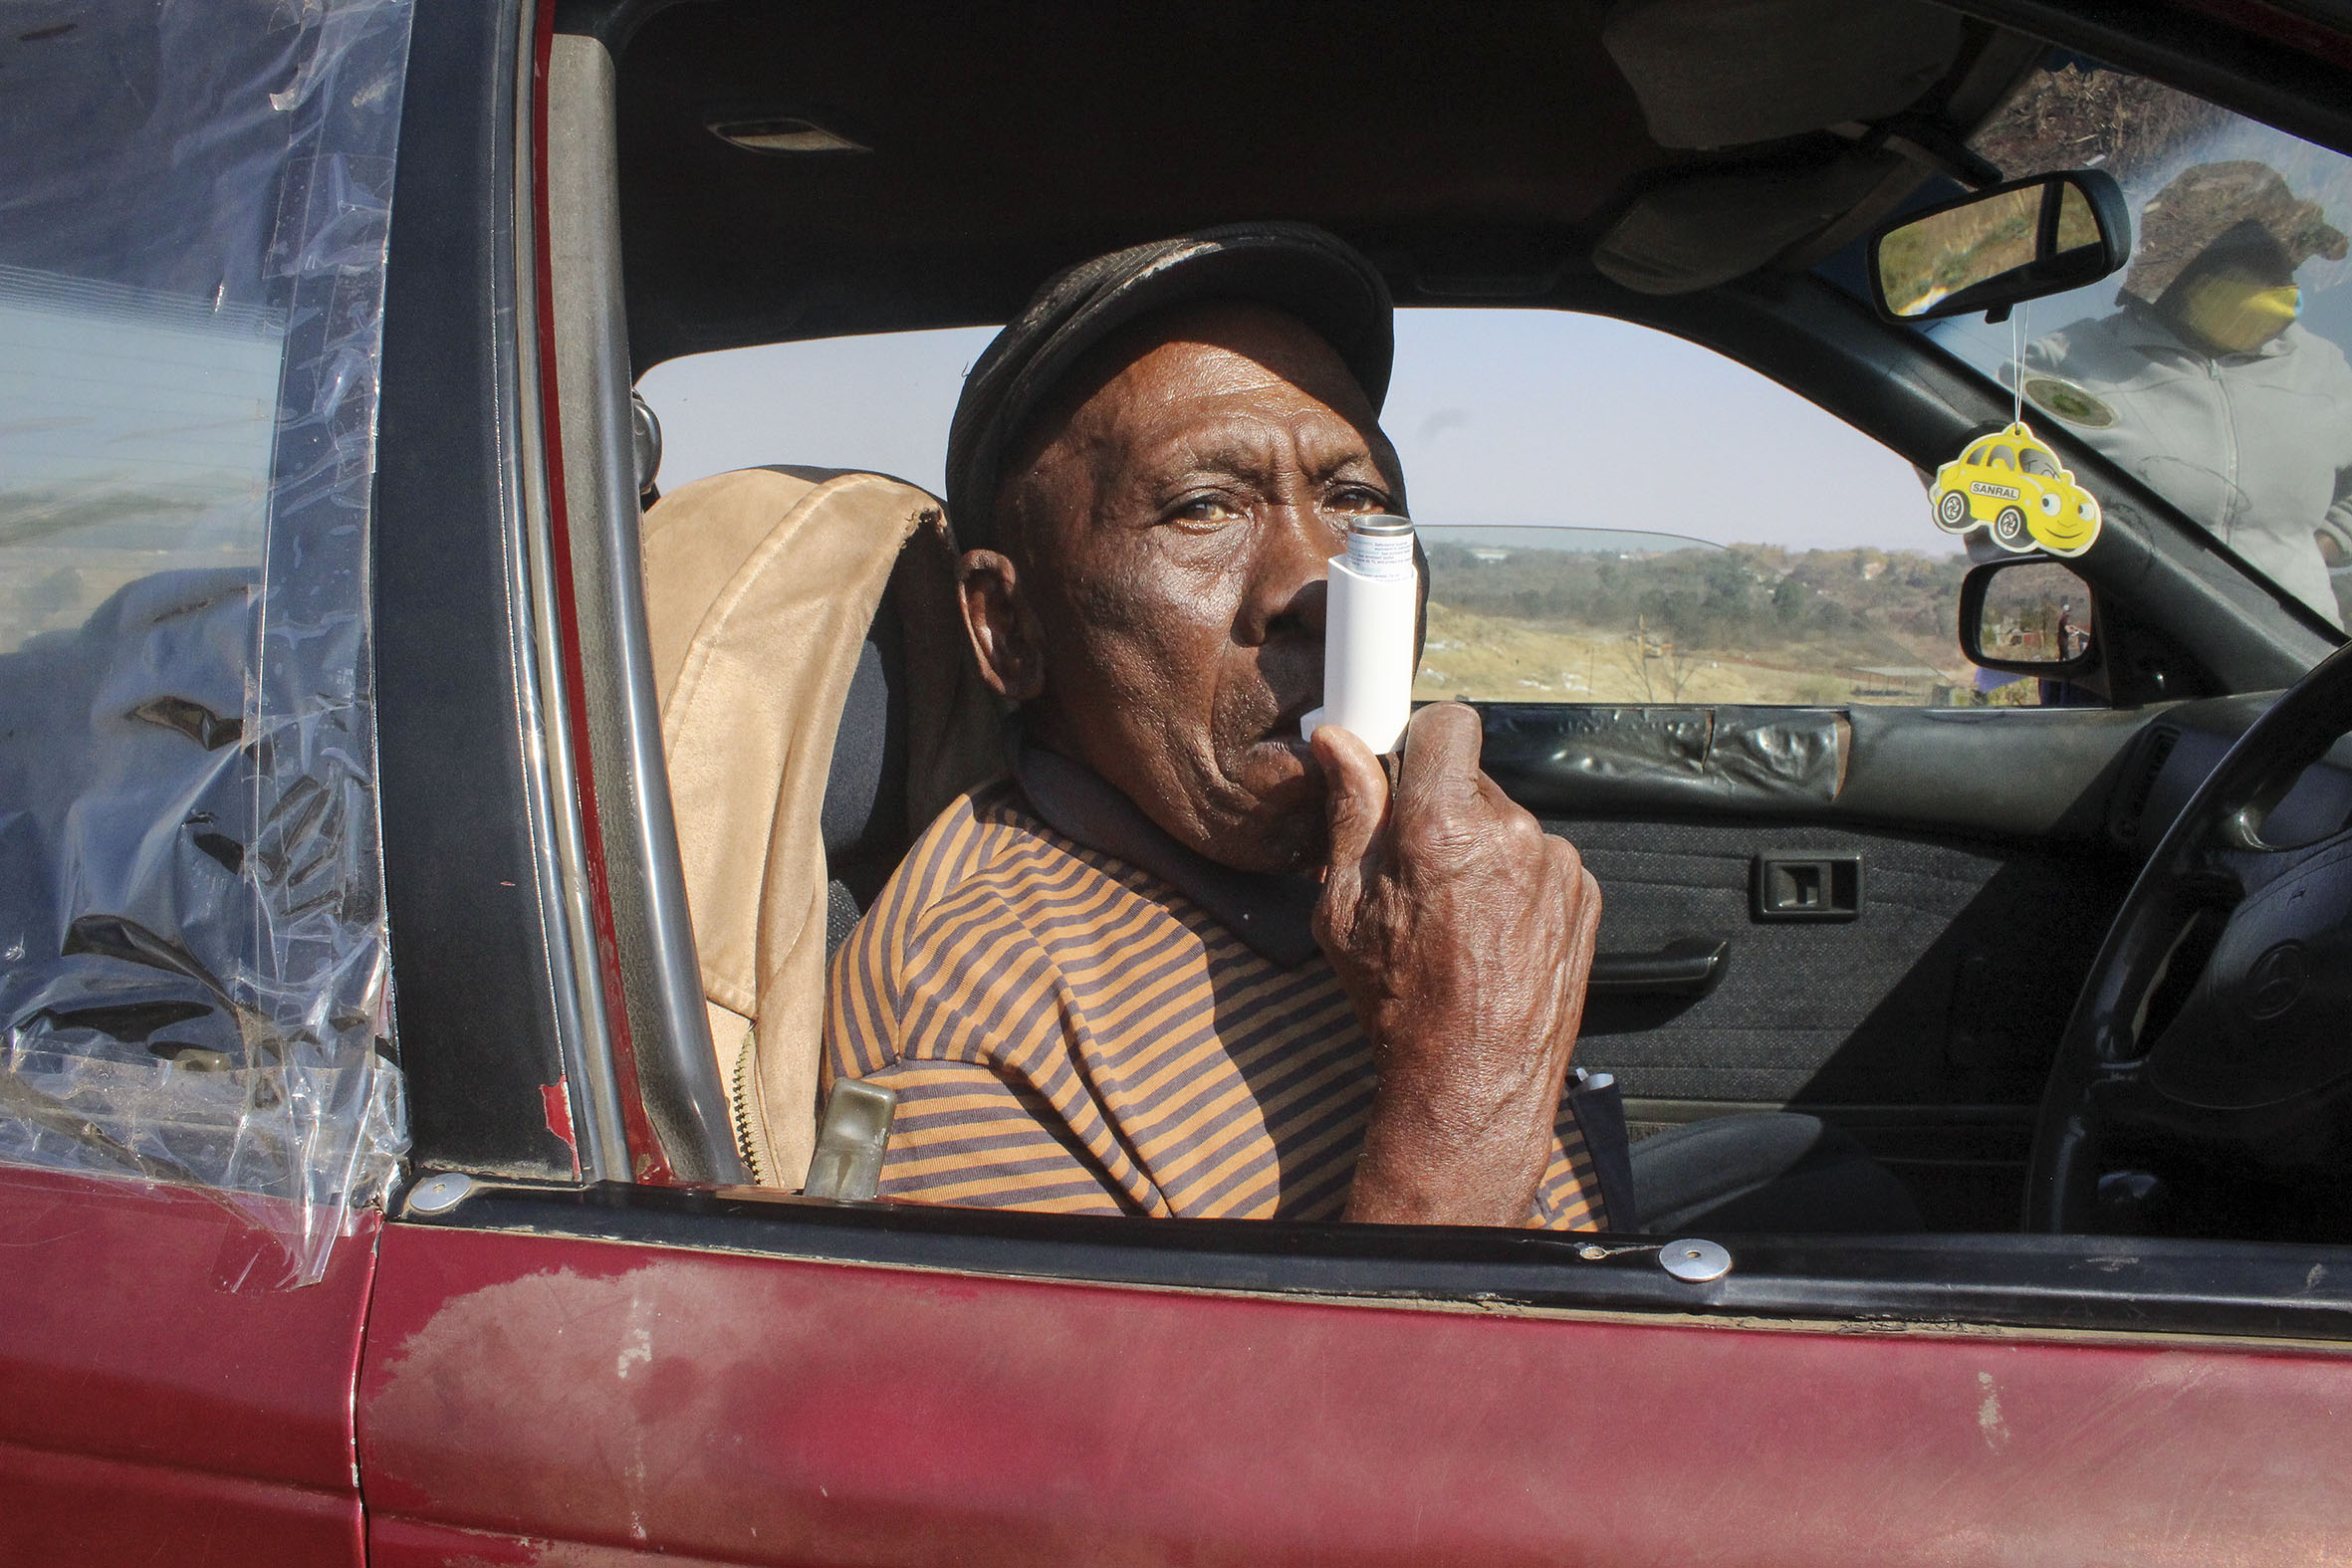 28 July 2020: Sobantu resident Mbuyiselwa Khumalo, 75, was diagnosed with asthma and high blood pressure more than a decade ago and uses an inhaler. When the pump doesn't help, he has to be nebulised at the local clinic. (Photograph by Tony Carnie)